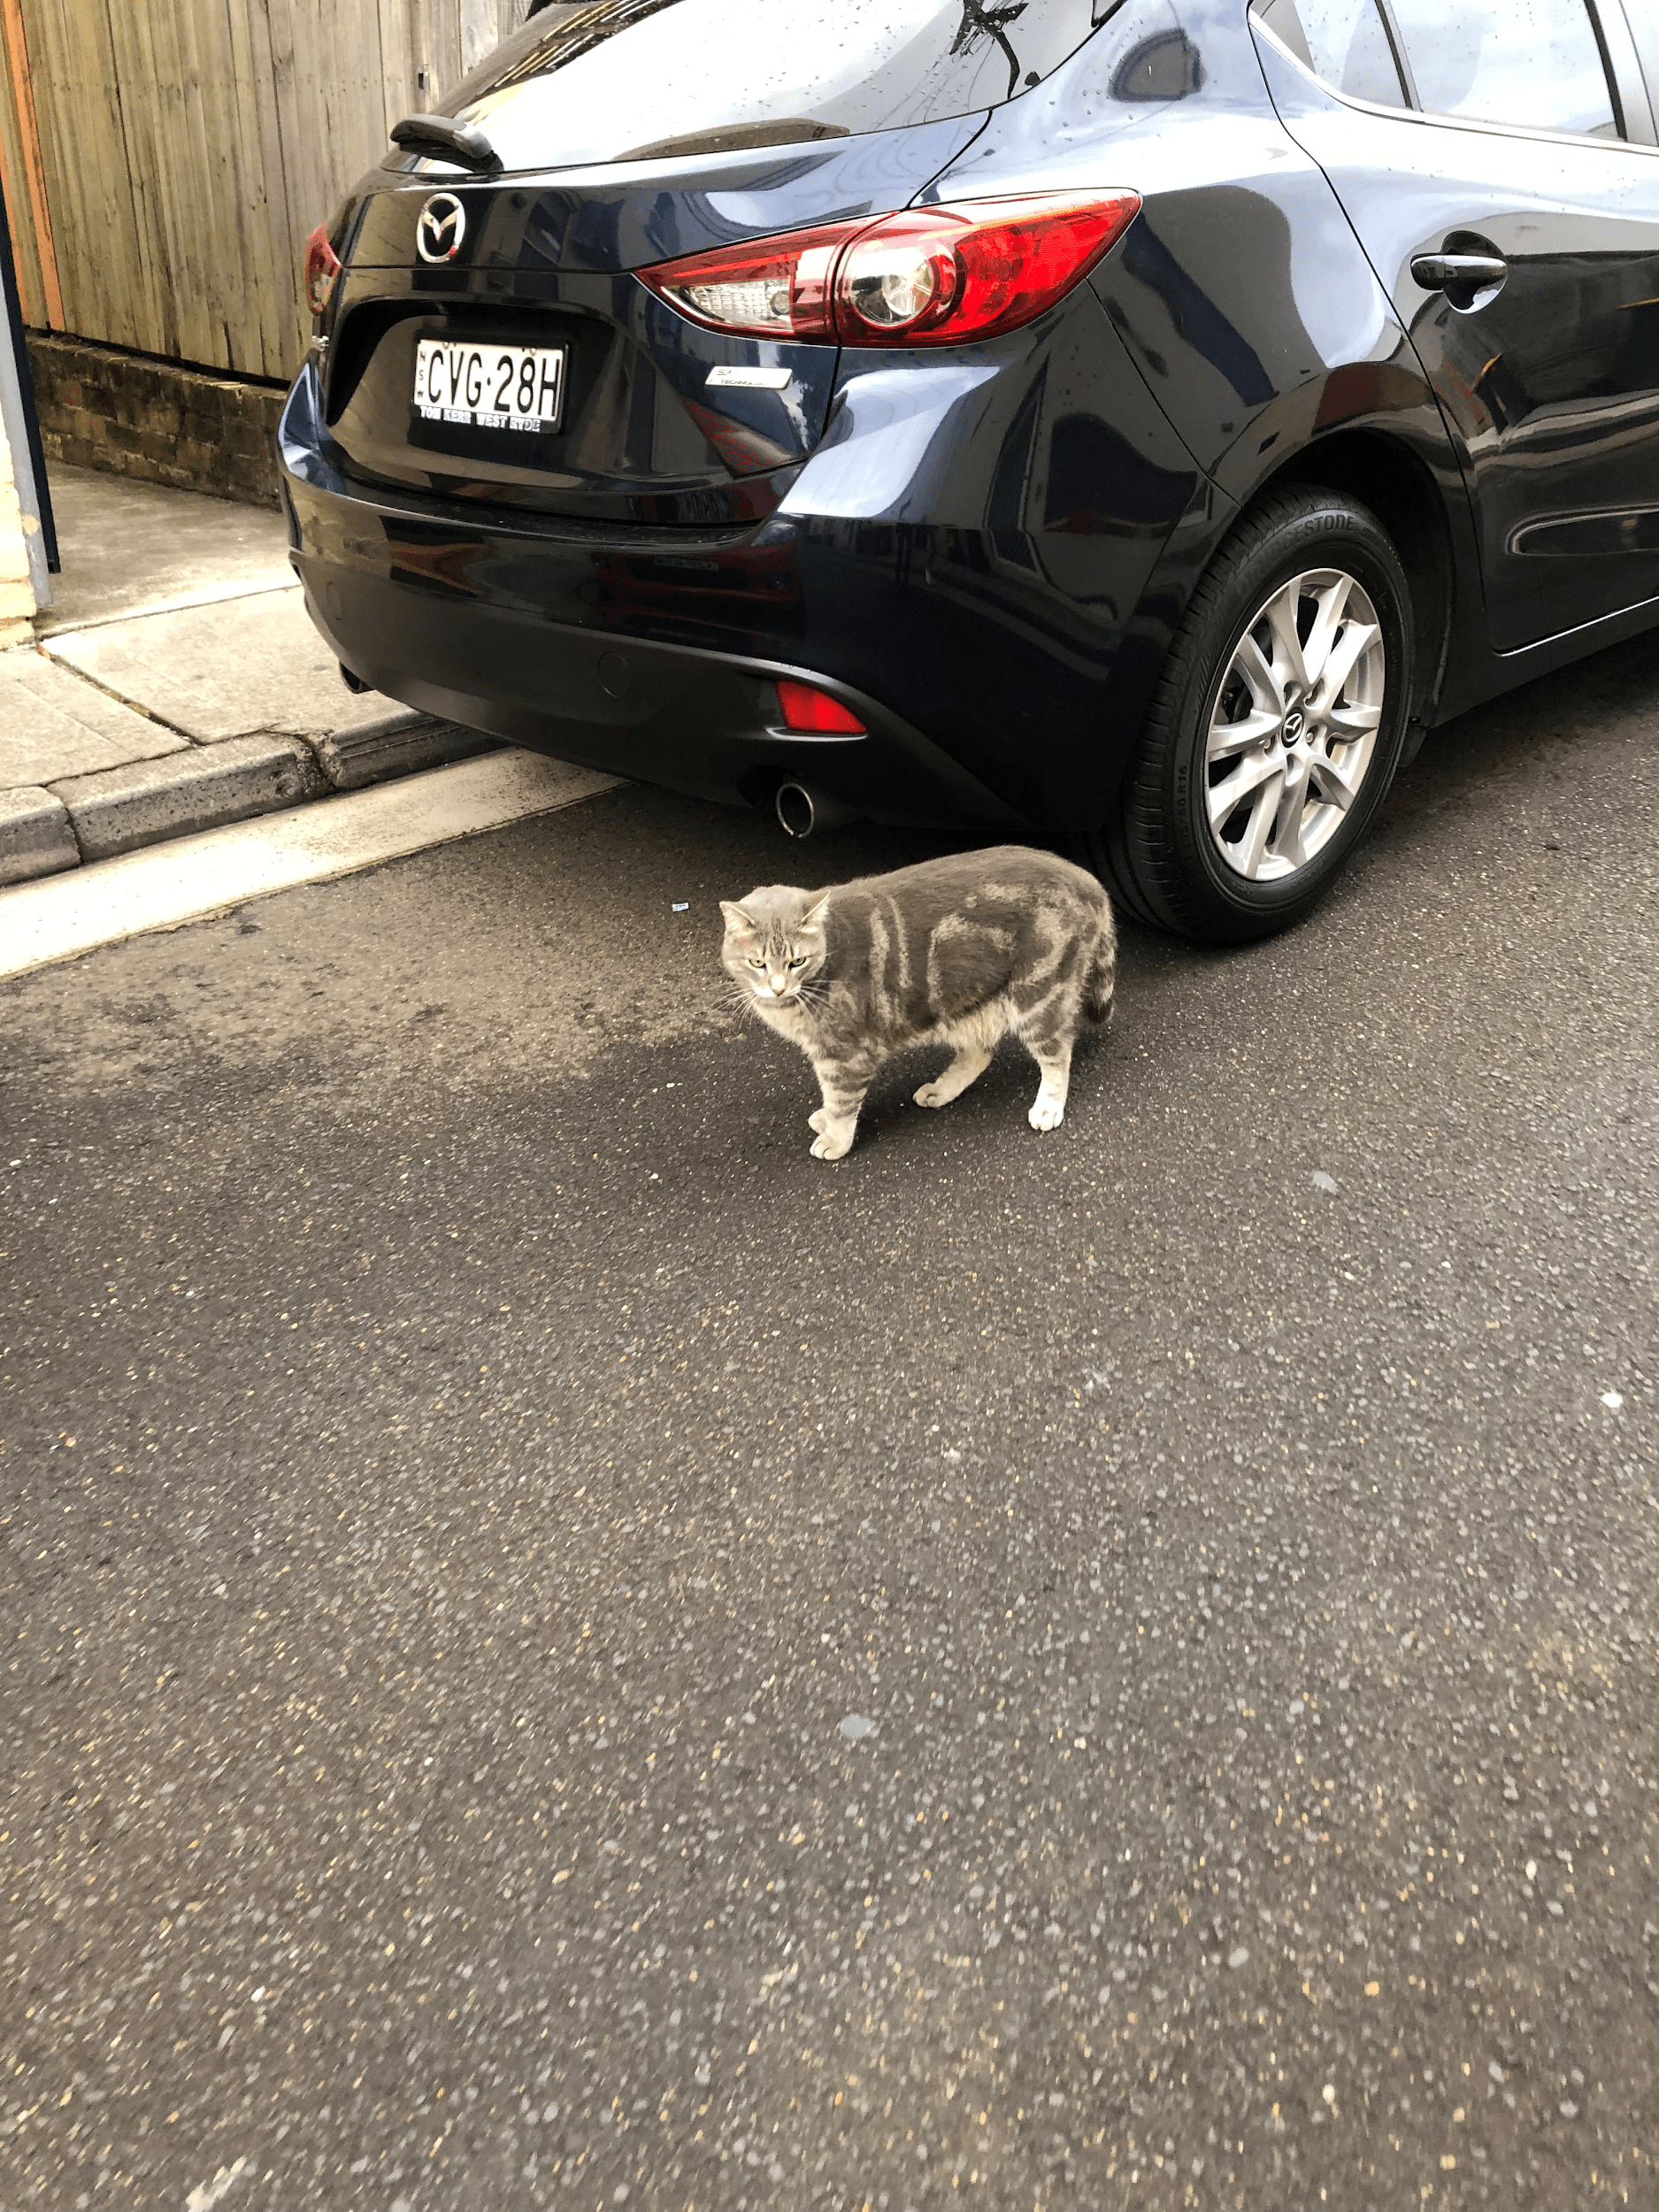 Cat standing next to tire of black car